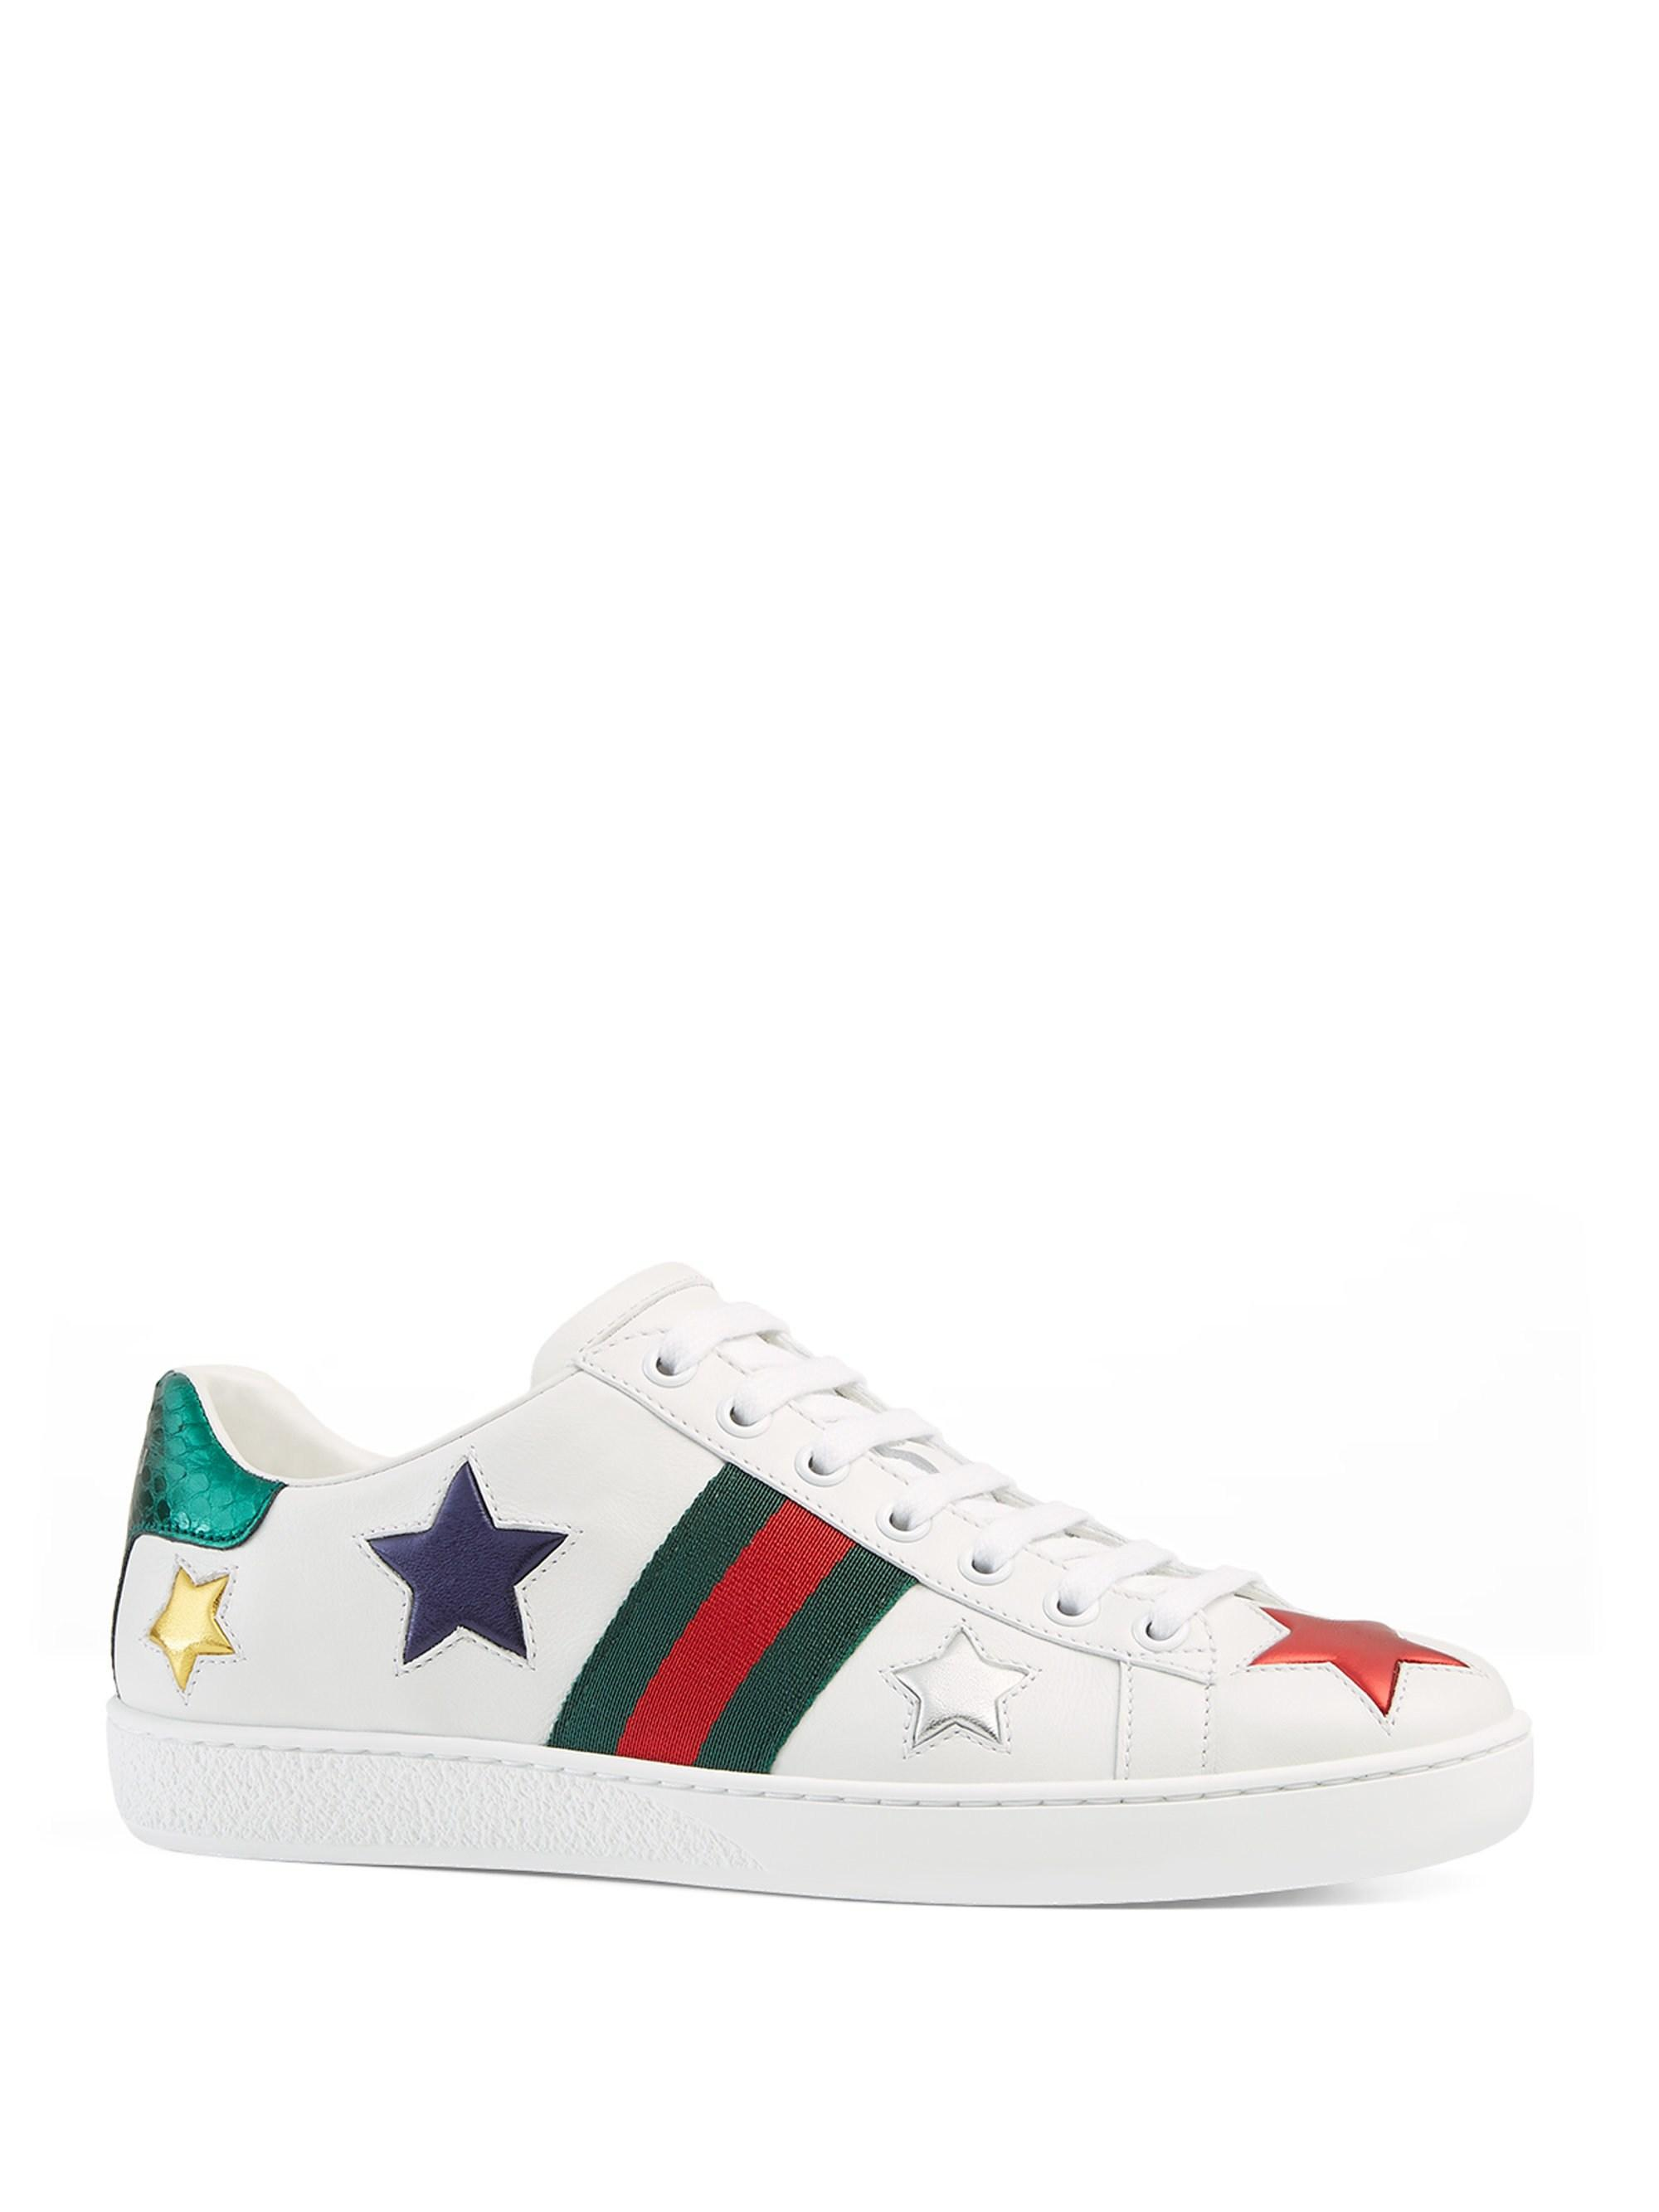 Lyst - Gucci New Ace Star Patch Trainers in White - Save 8% 70e1b2191790